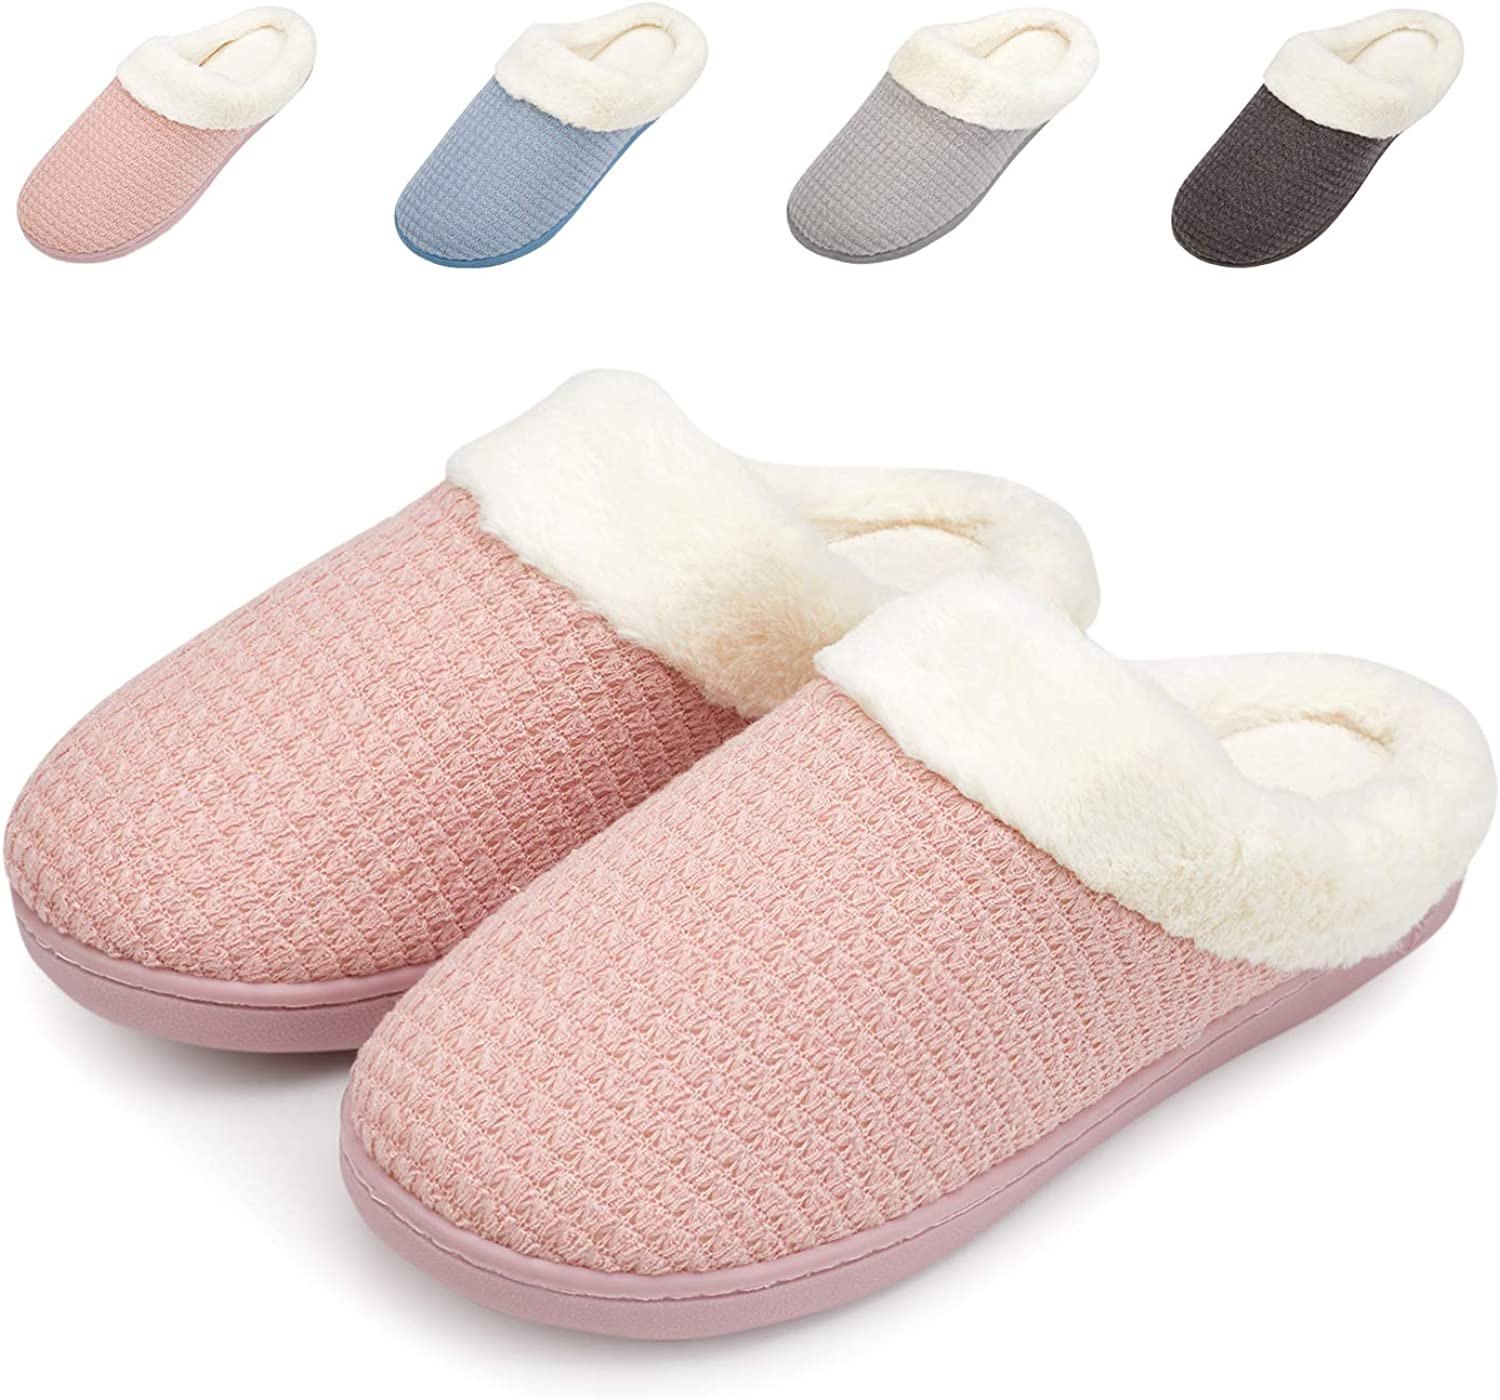 Welltree Women's Warm House Slippers Cotton shoes Memory Foam Lining Indoor Comfort Anti Slip Washable Soft Pink